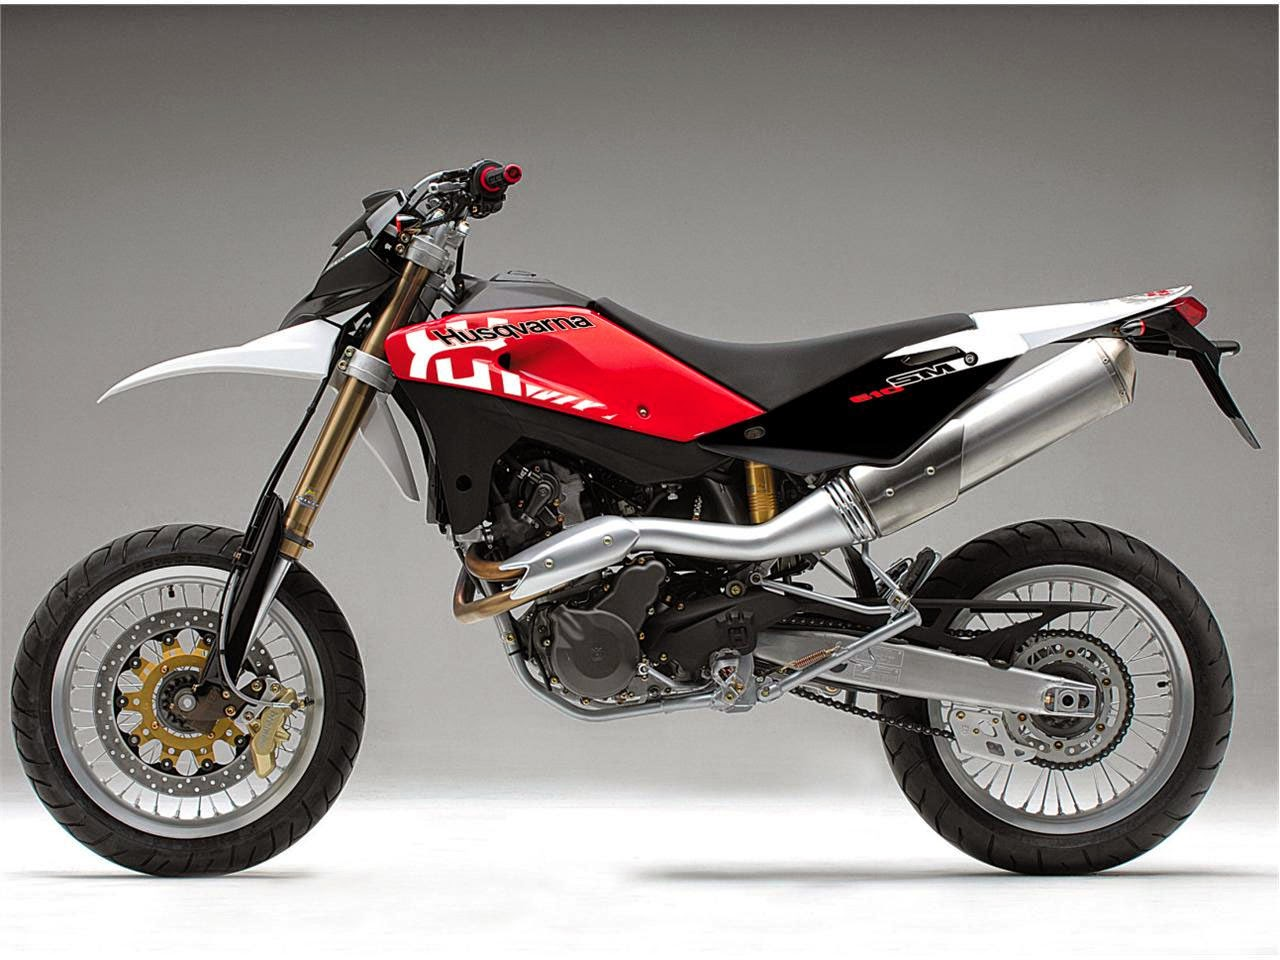 Husqvarna SM610 Red Bikes Images